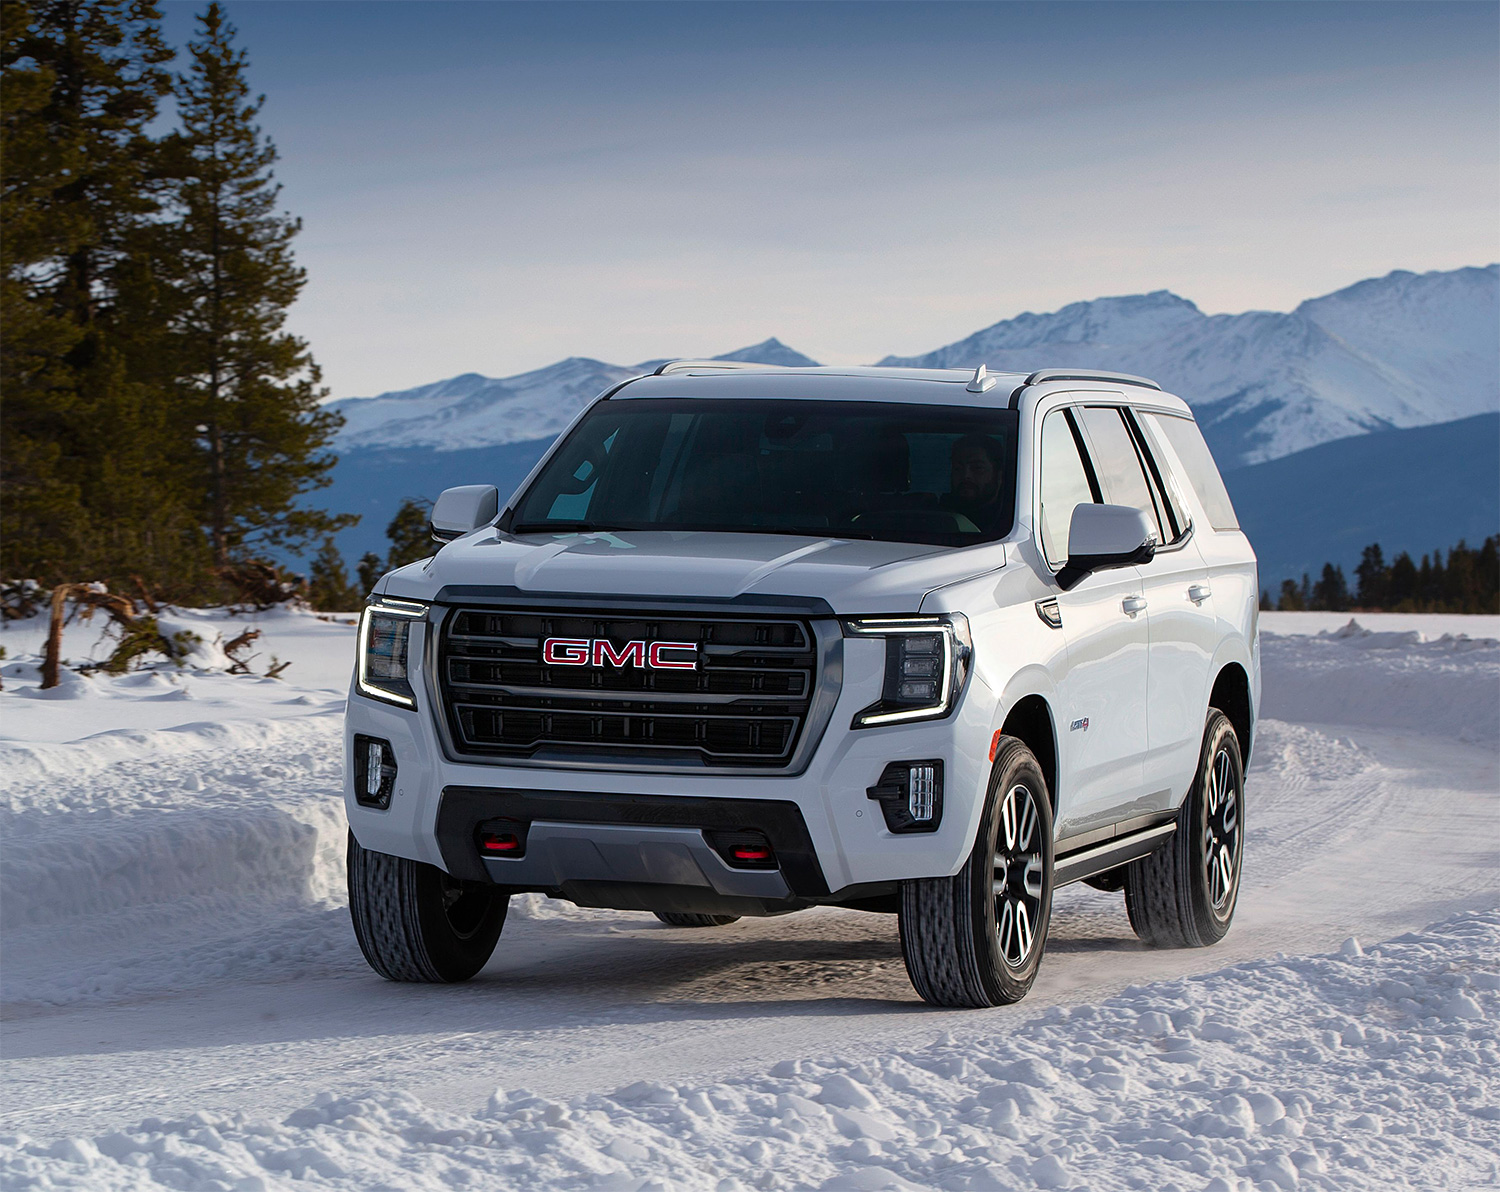 GMC Unveils Bigger, Badder 2021 Yukon at werd.com